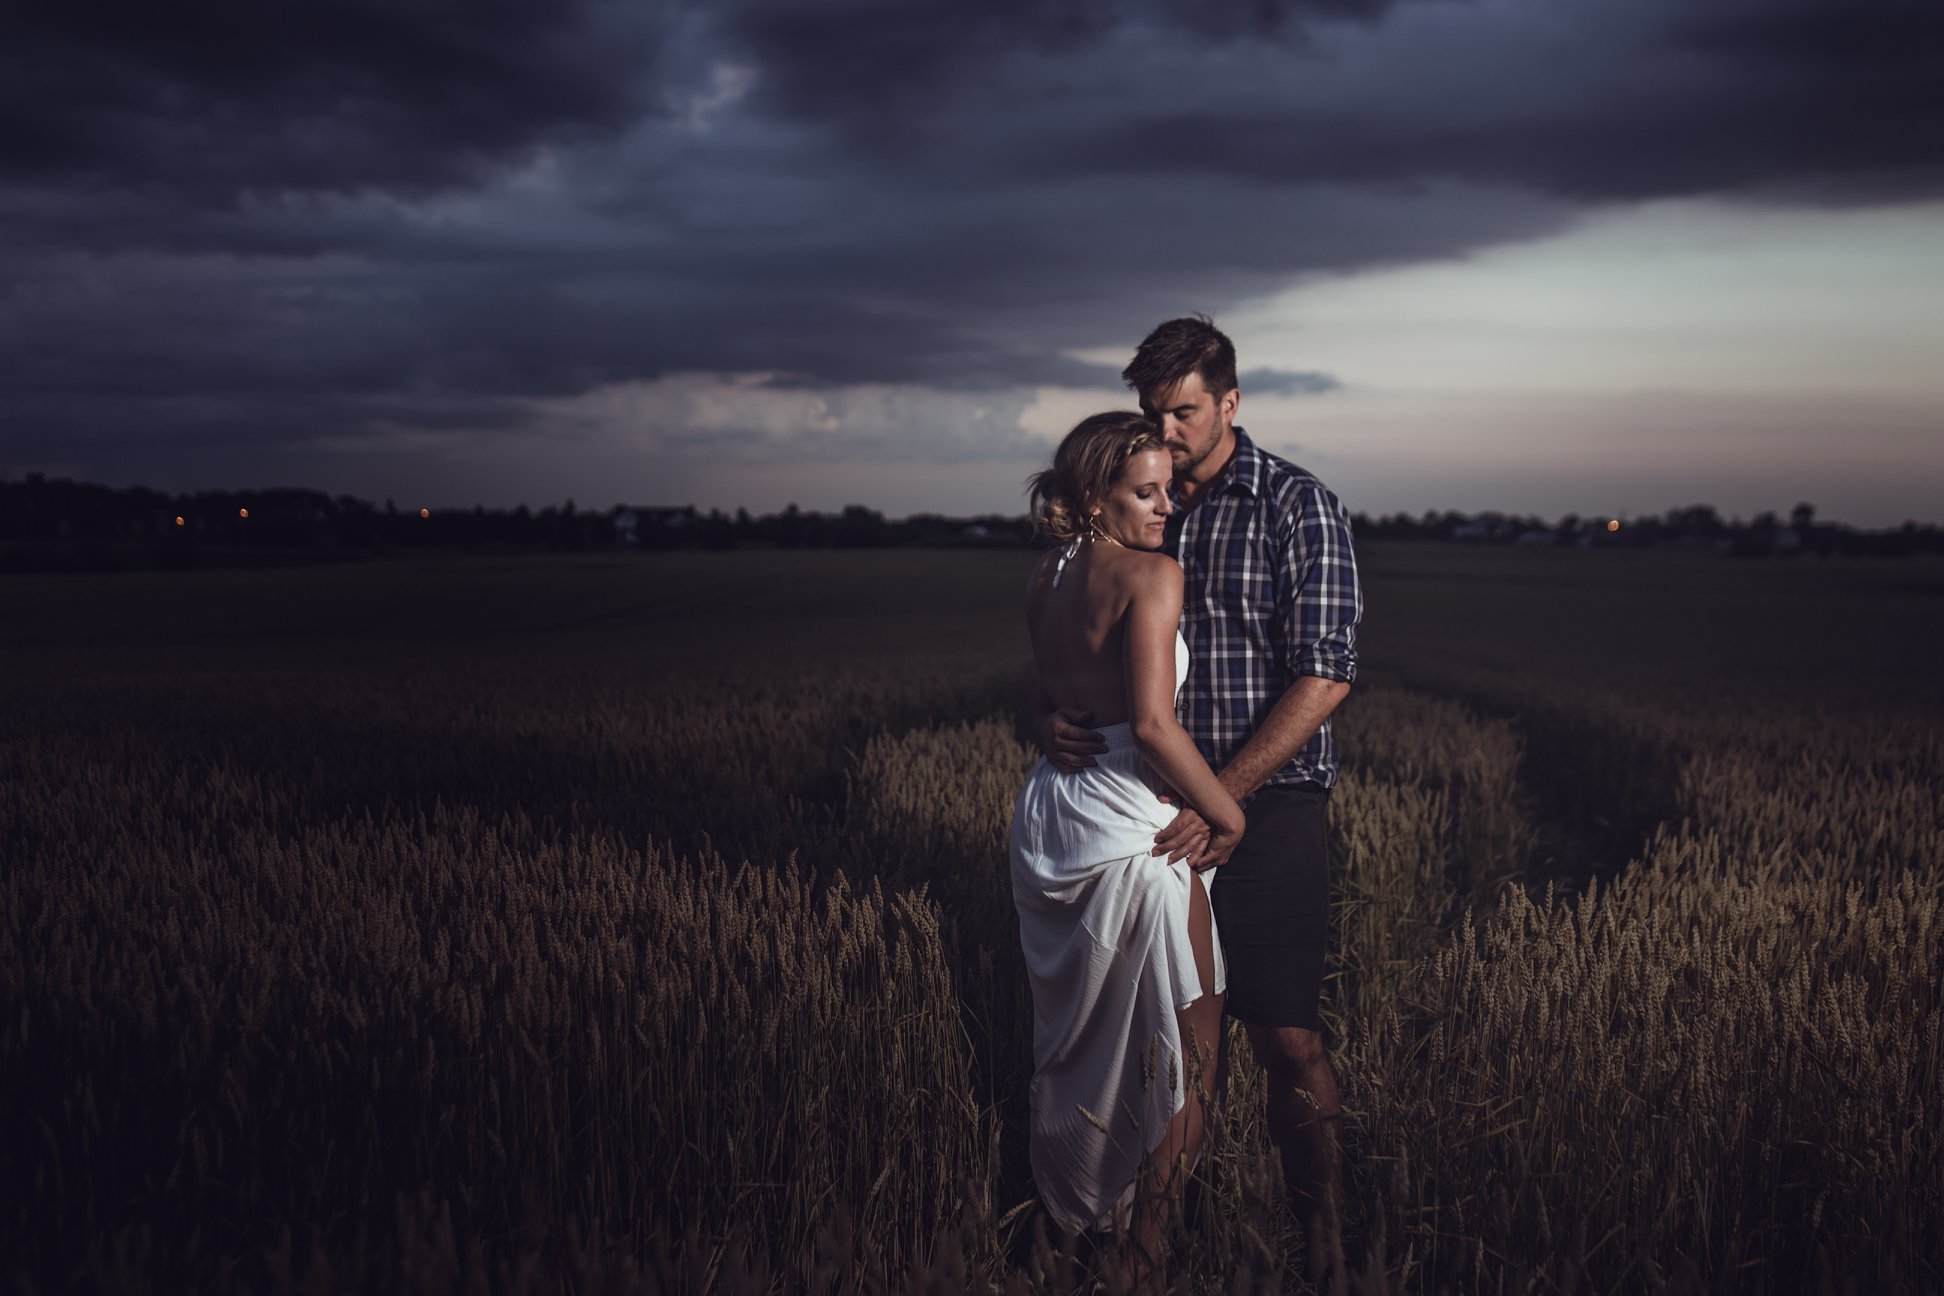 enagement-photography-couple-embracing-in-field-with-storm-approaching.jpg